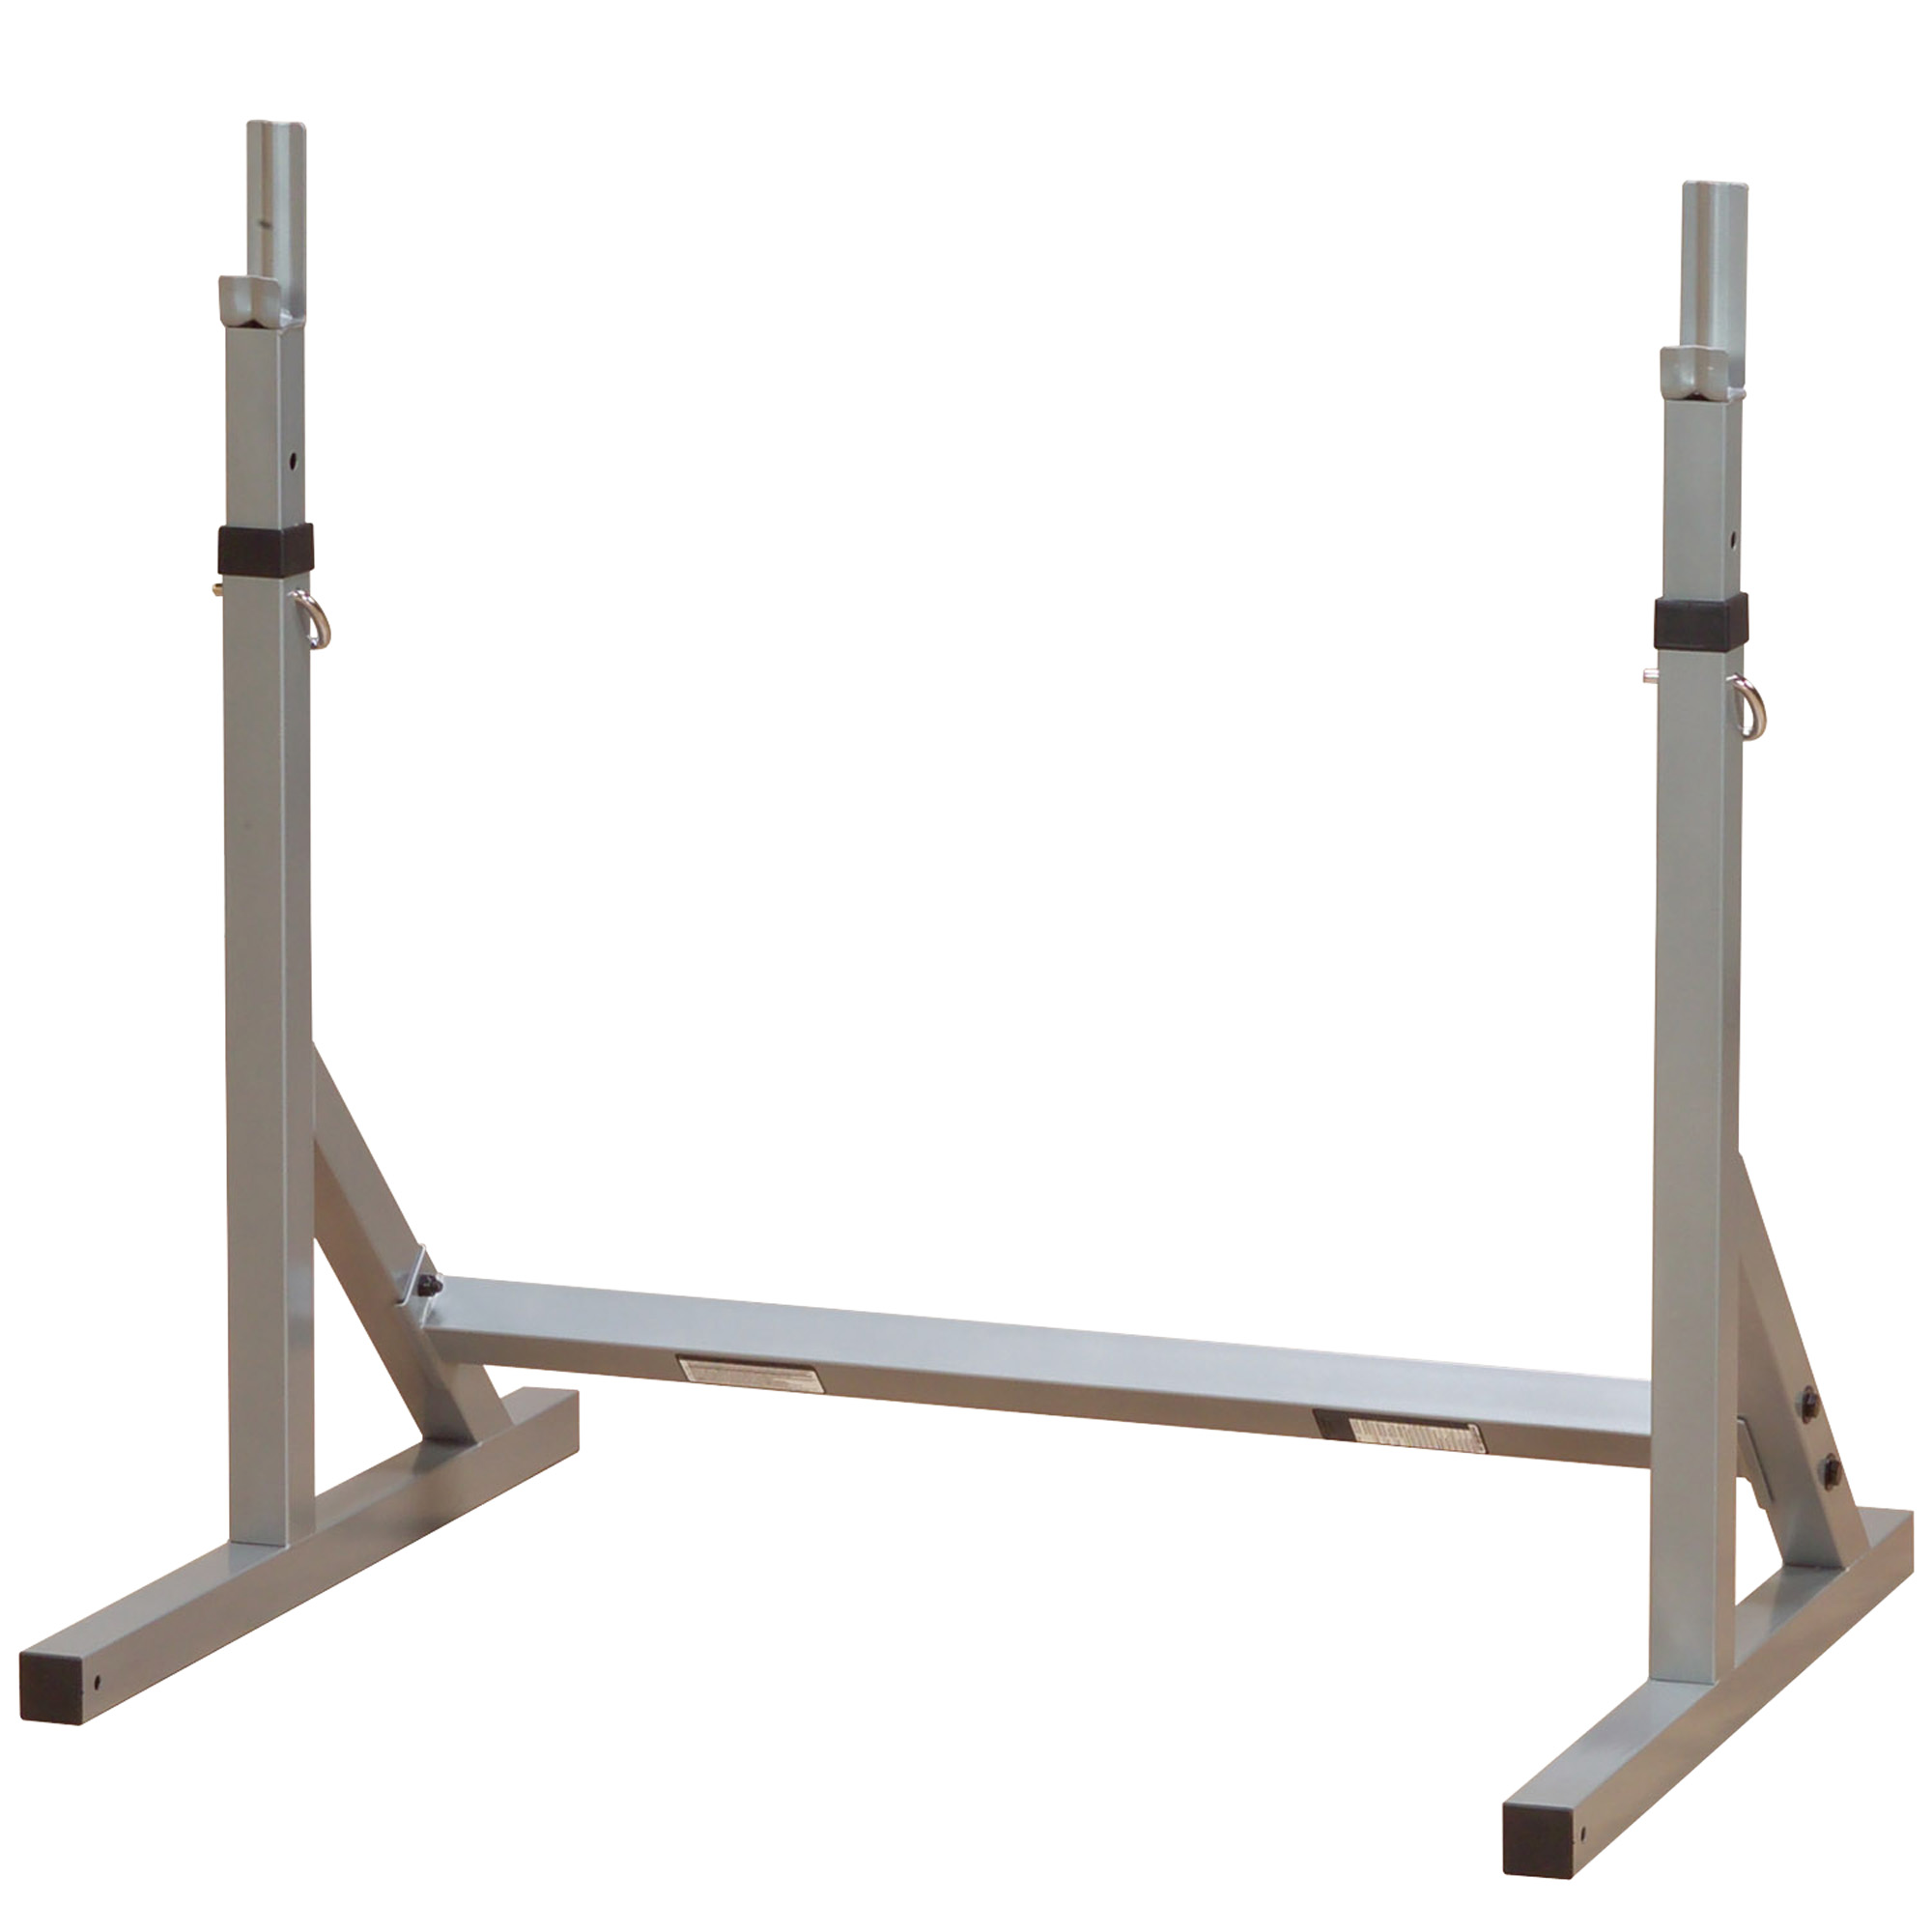 PSS60X Squat Rack by Body-Solid